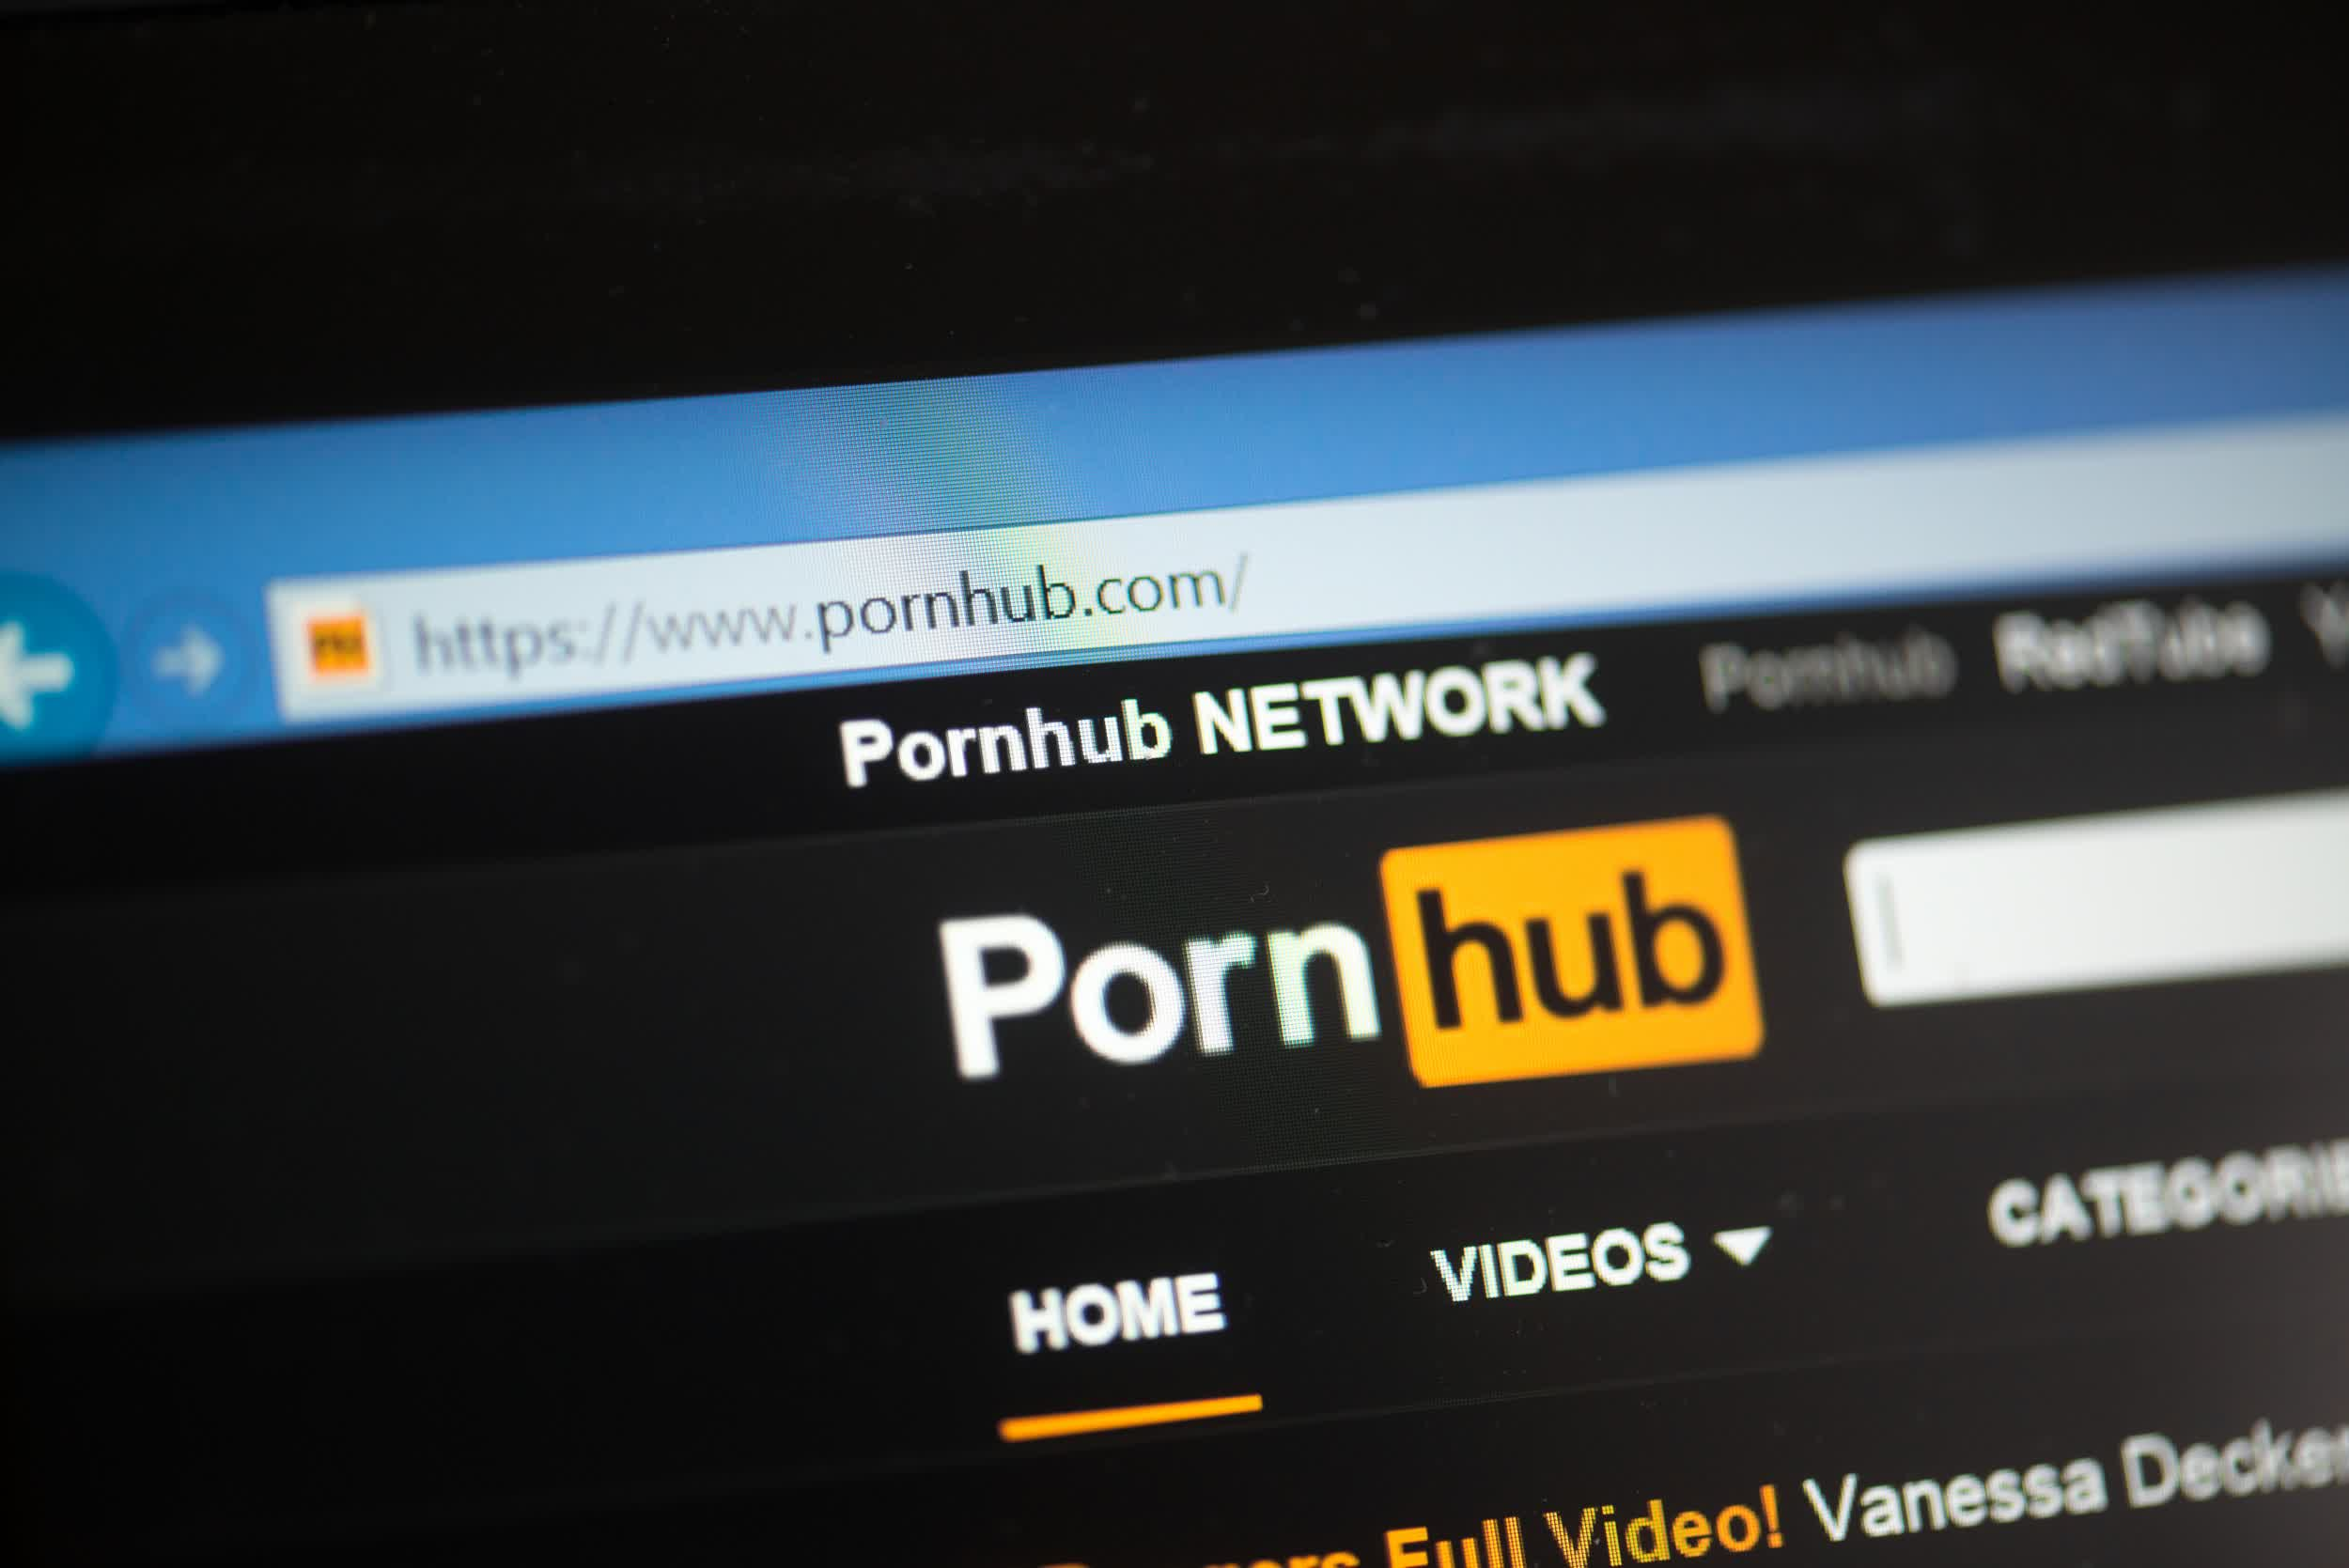 Pornhub scrubs million of videos from unverified users